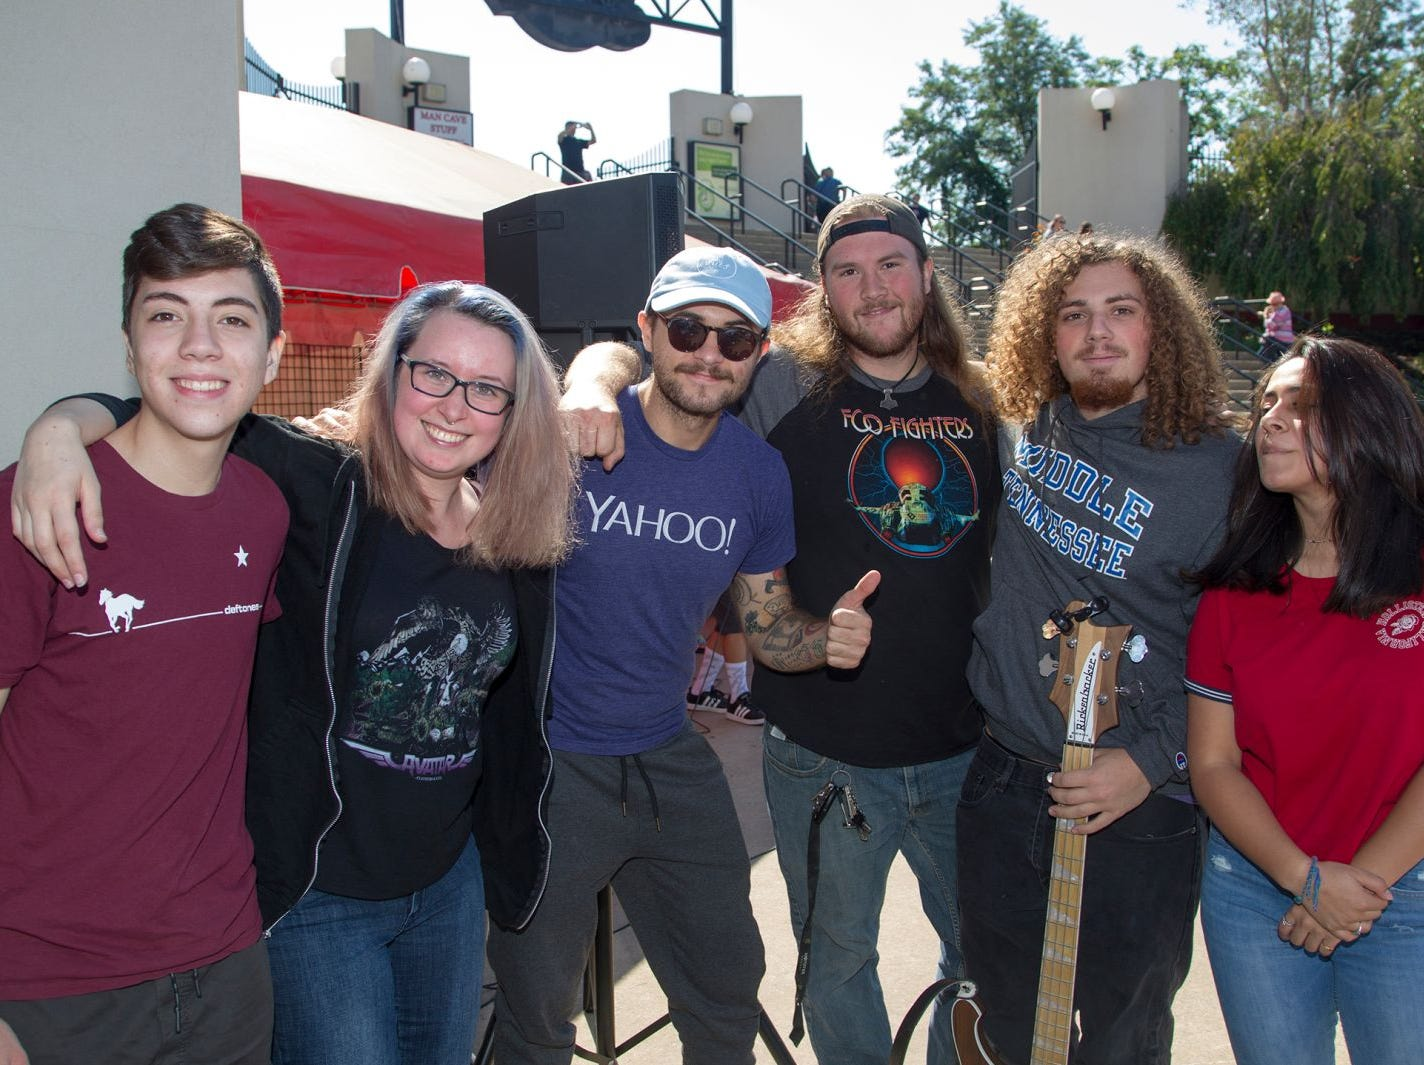 School of Rock House Band. Gavin, Becum, Wyatt, Vic, Marcus, Renee. The second annual Food Truck & Craft Beer Festival at Yogi Berra Stadium in Little Falls. 09/29/2018